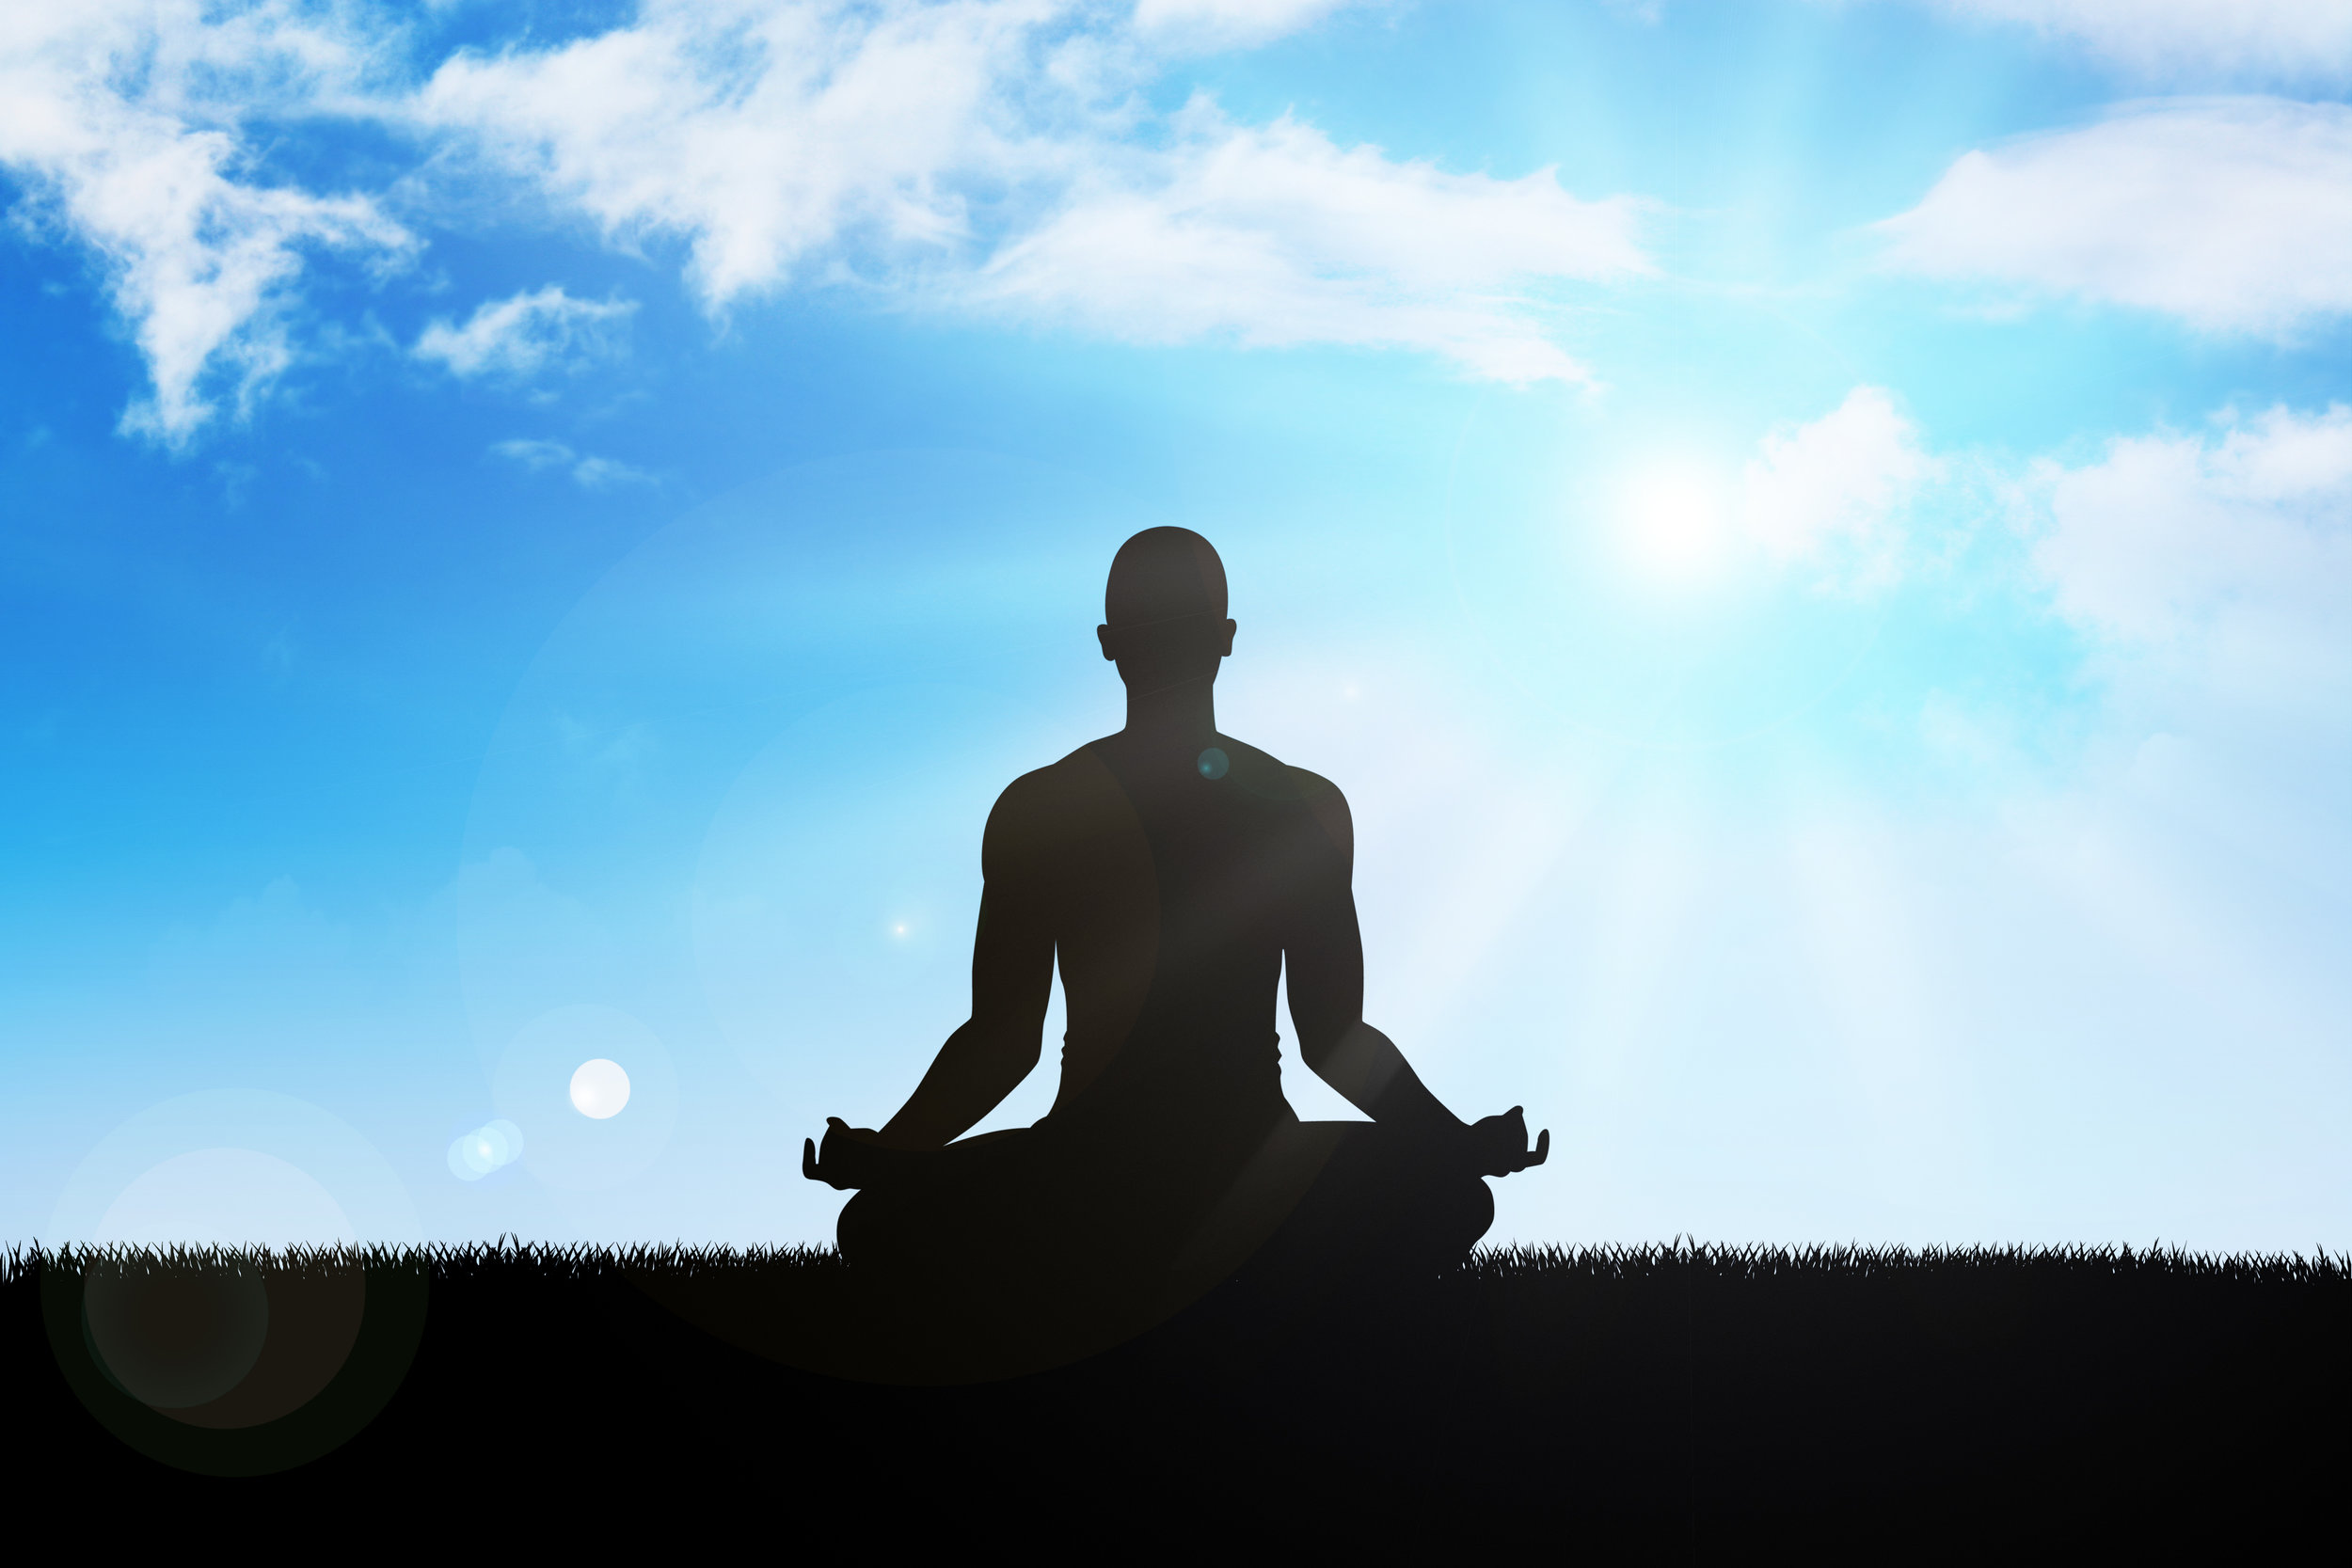 Meditation-Wallpaper-HD.jpg